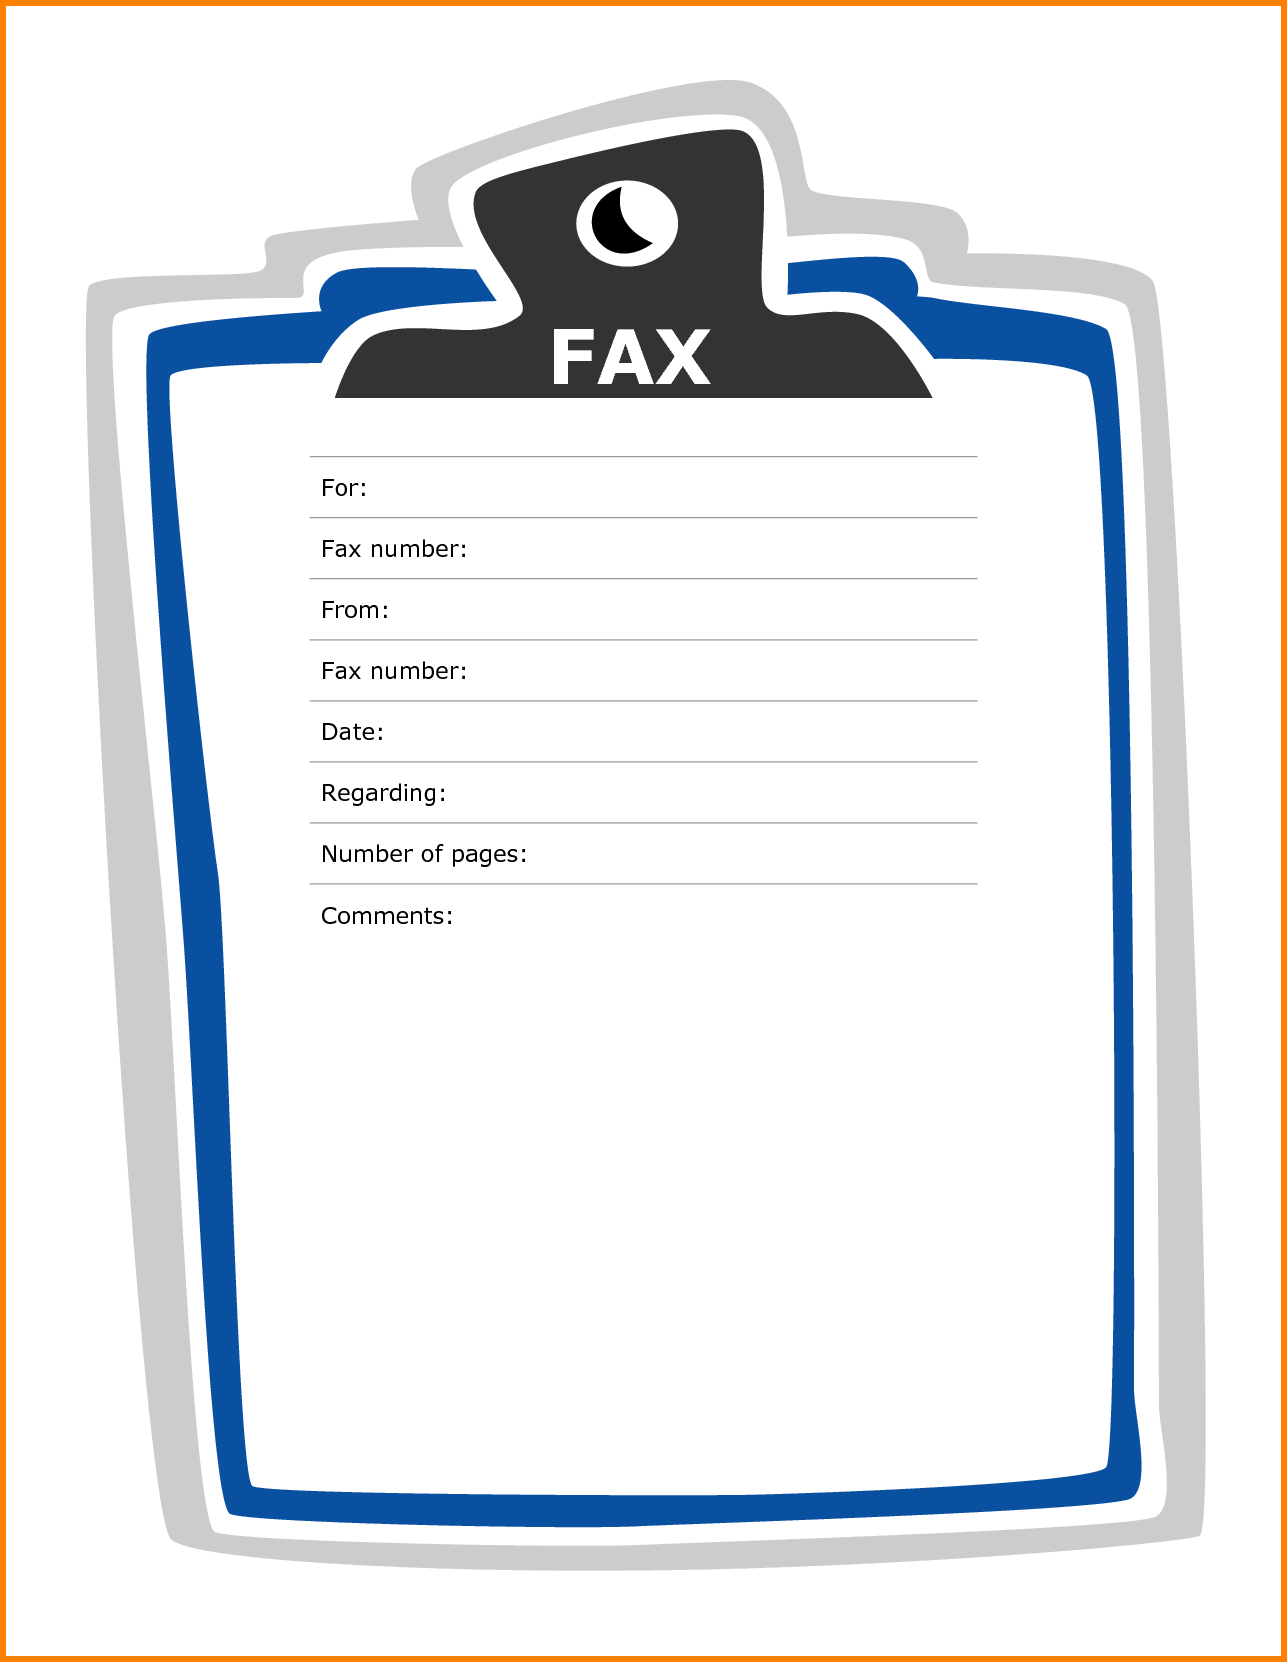 Generic Fax Cover Sheet Word Document